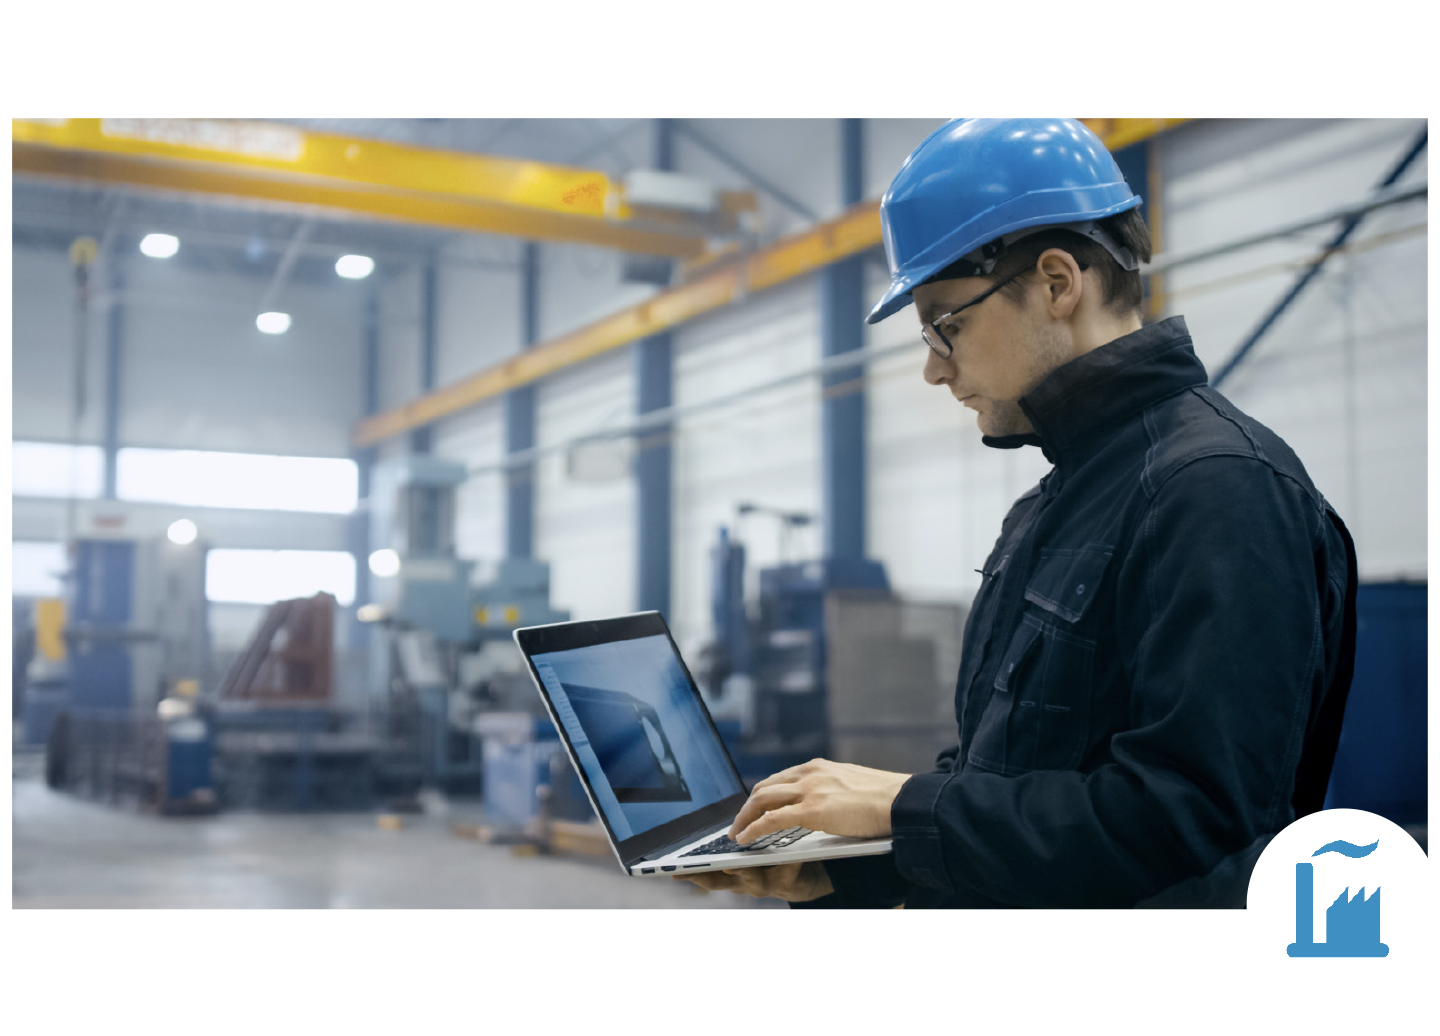 Manufacturing Worker Holding Laptop in Warehouse